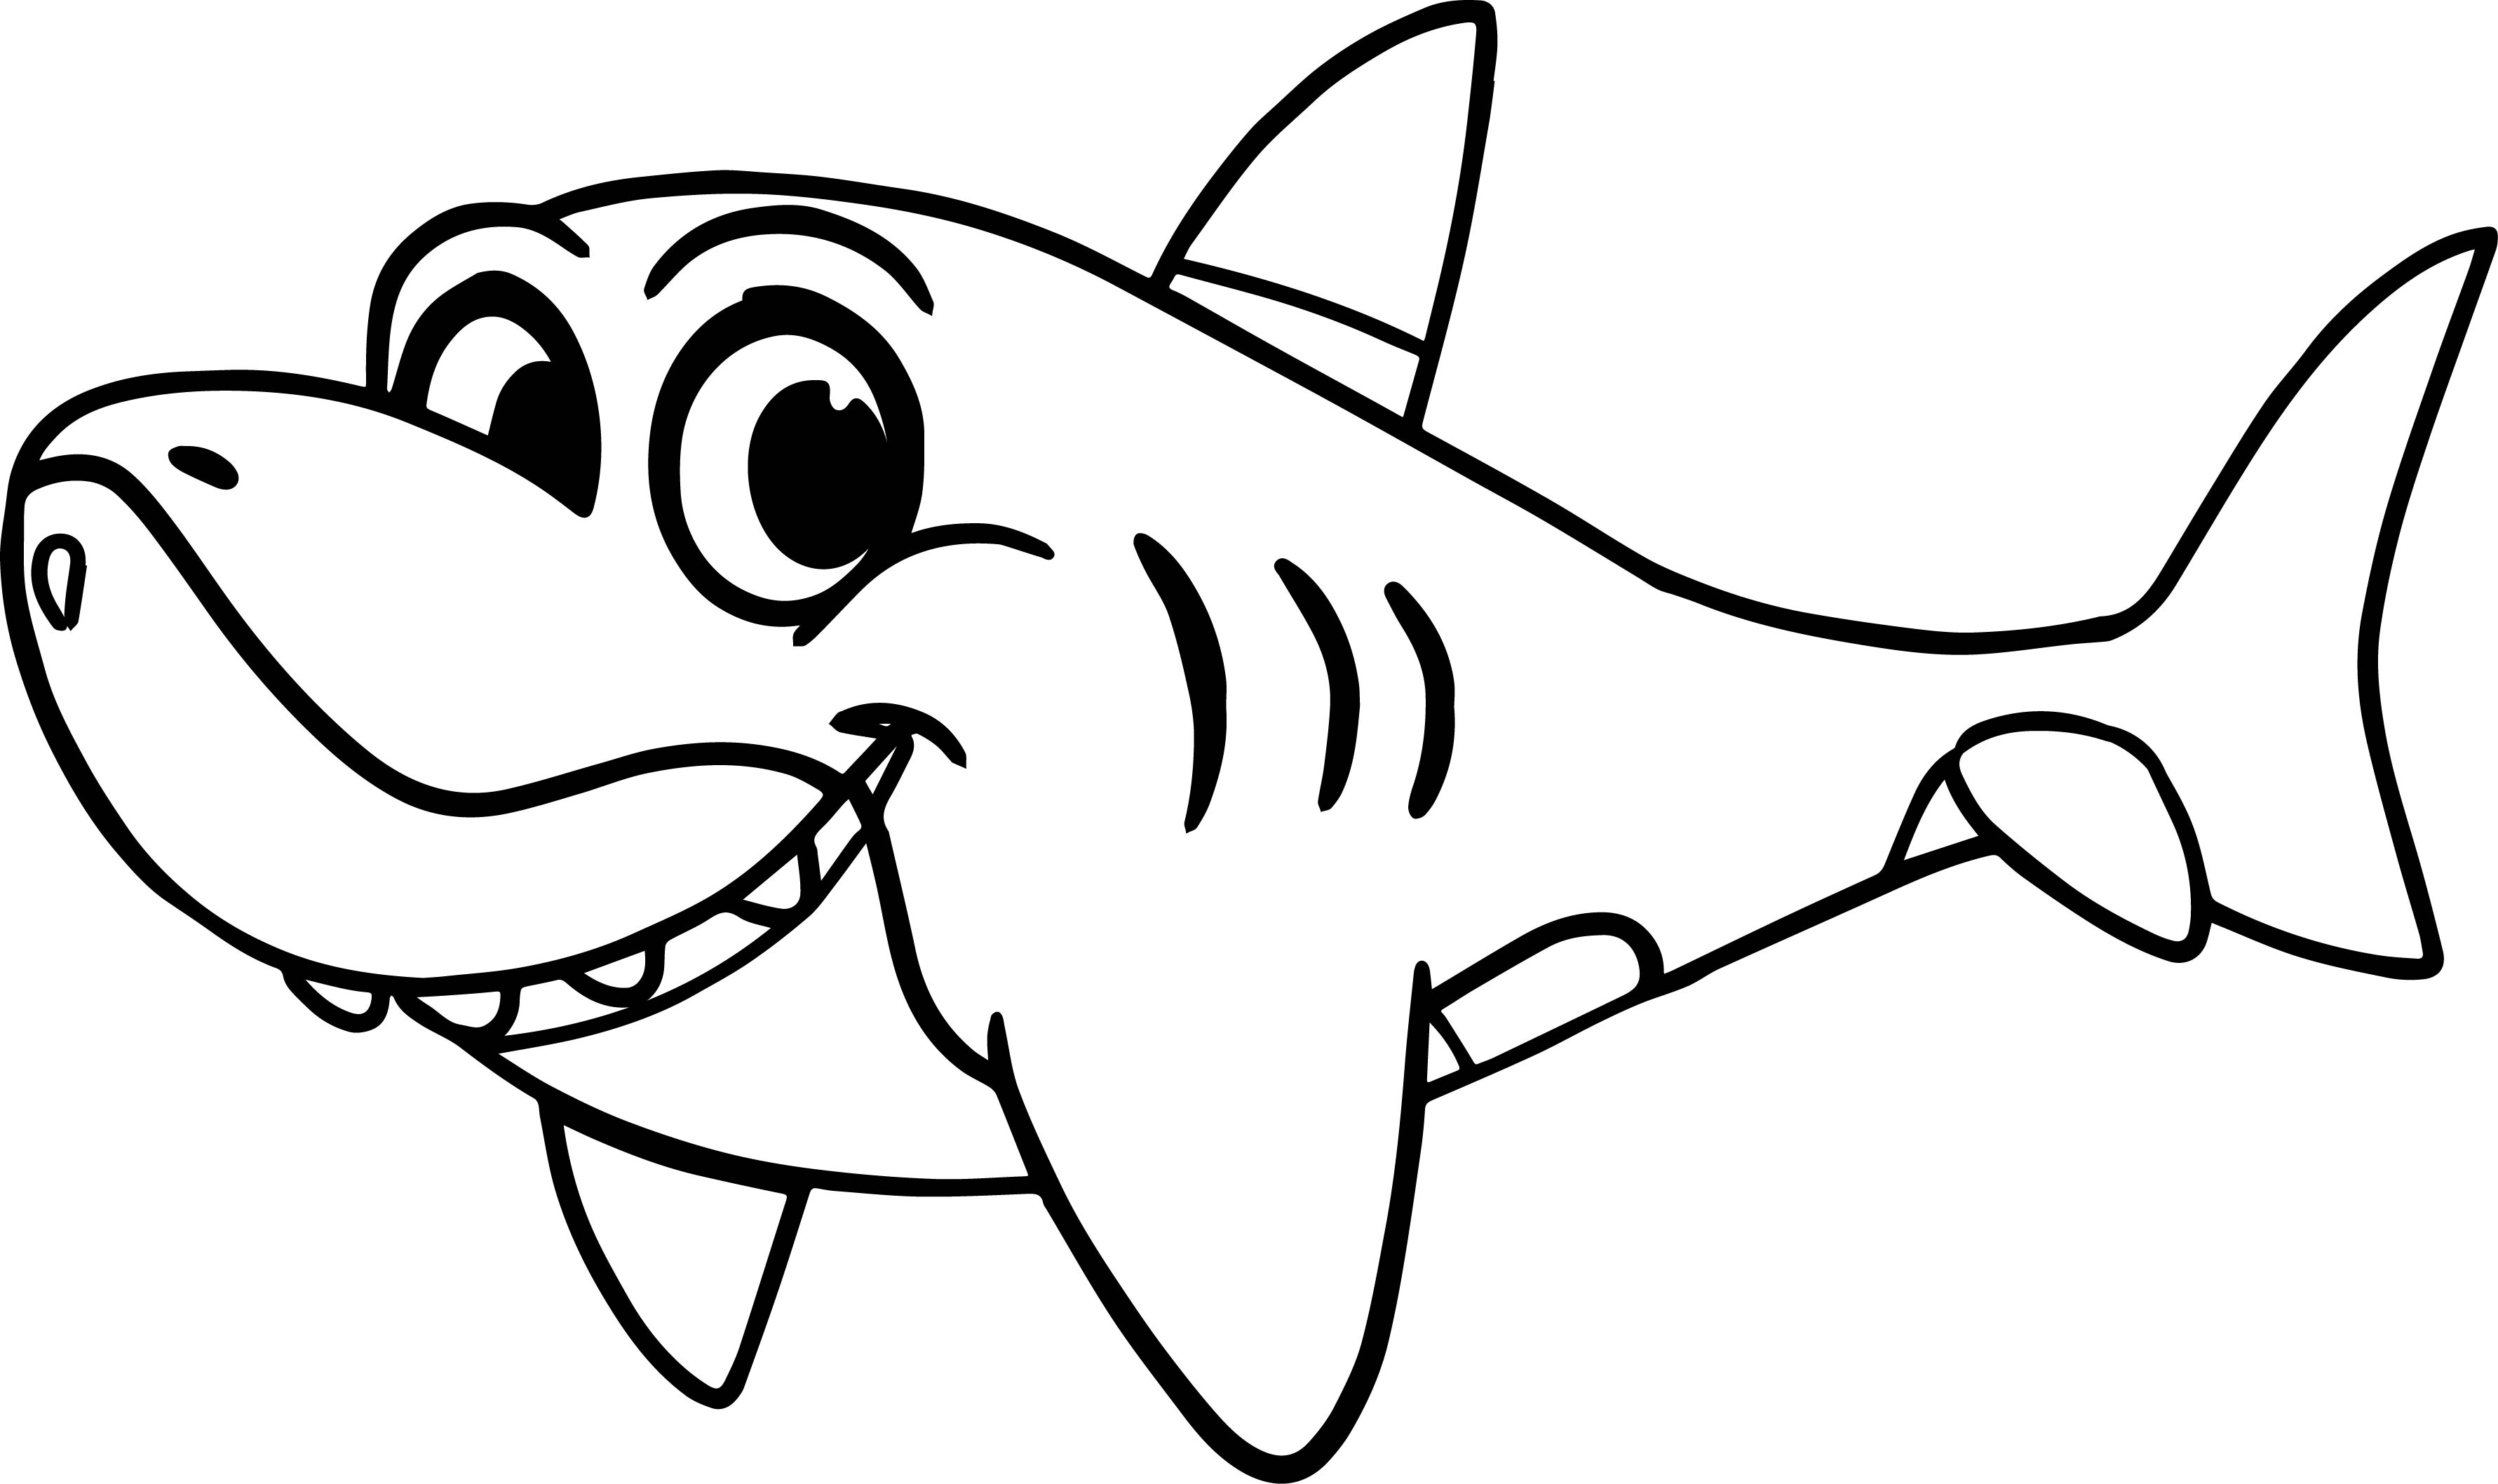 morphle cartoon my cute shark coloring page - Shark Coloring Book